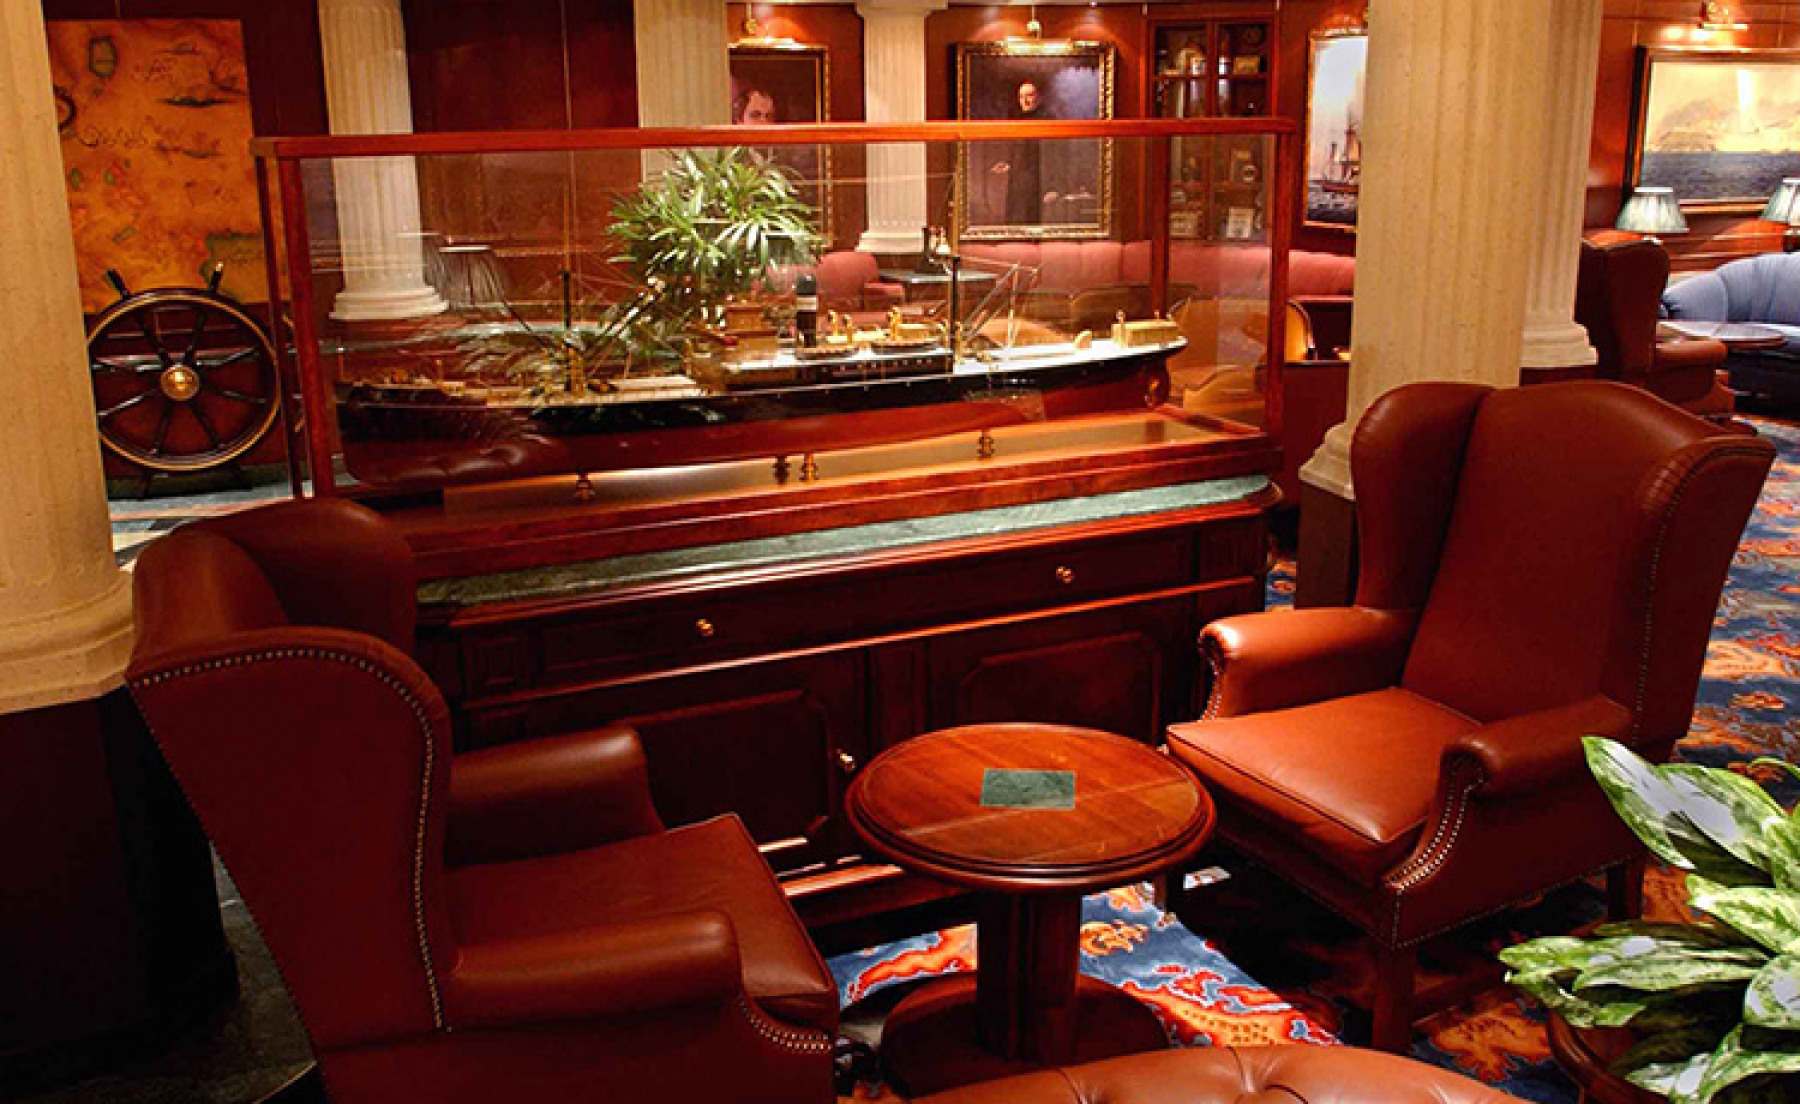 Princess cruises grand class wheelhouse bar.jpeg